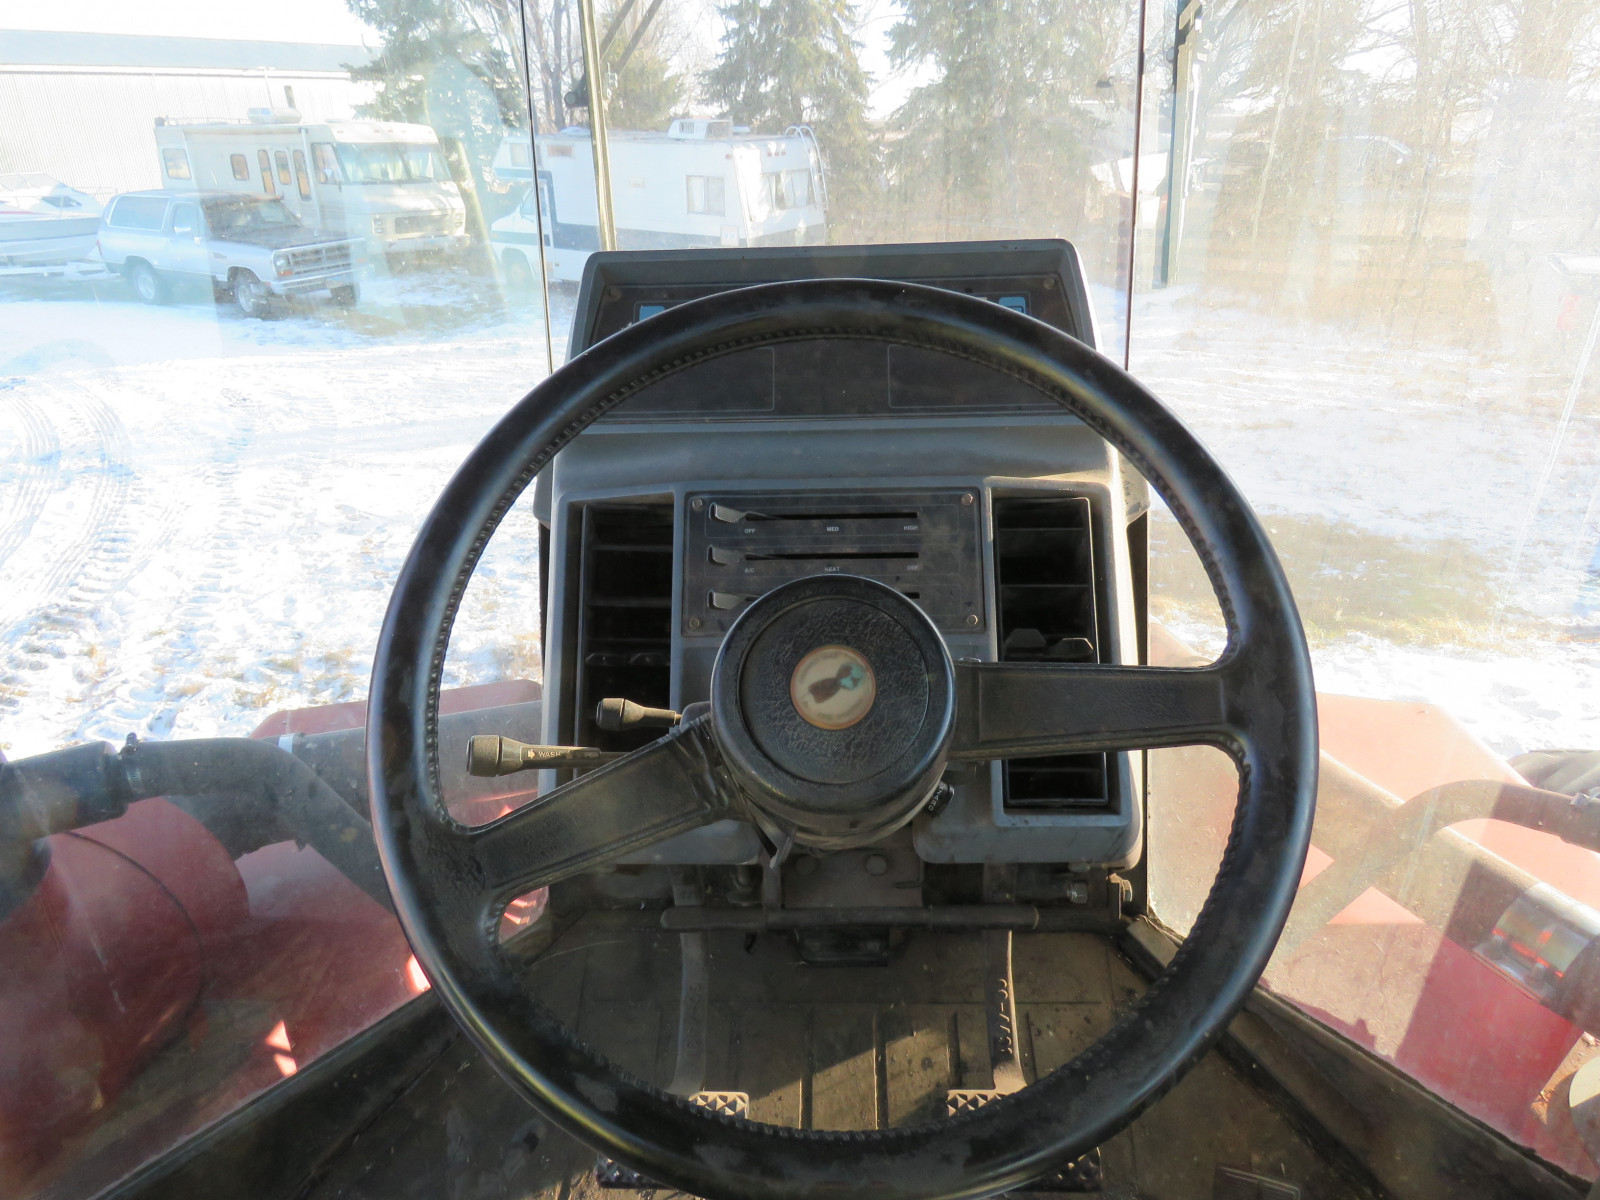 Case-IH 9170 4WD Tractor 9170 JCB0002613 - Image 14